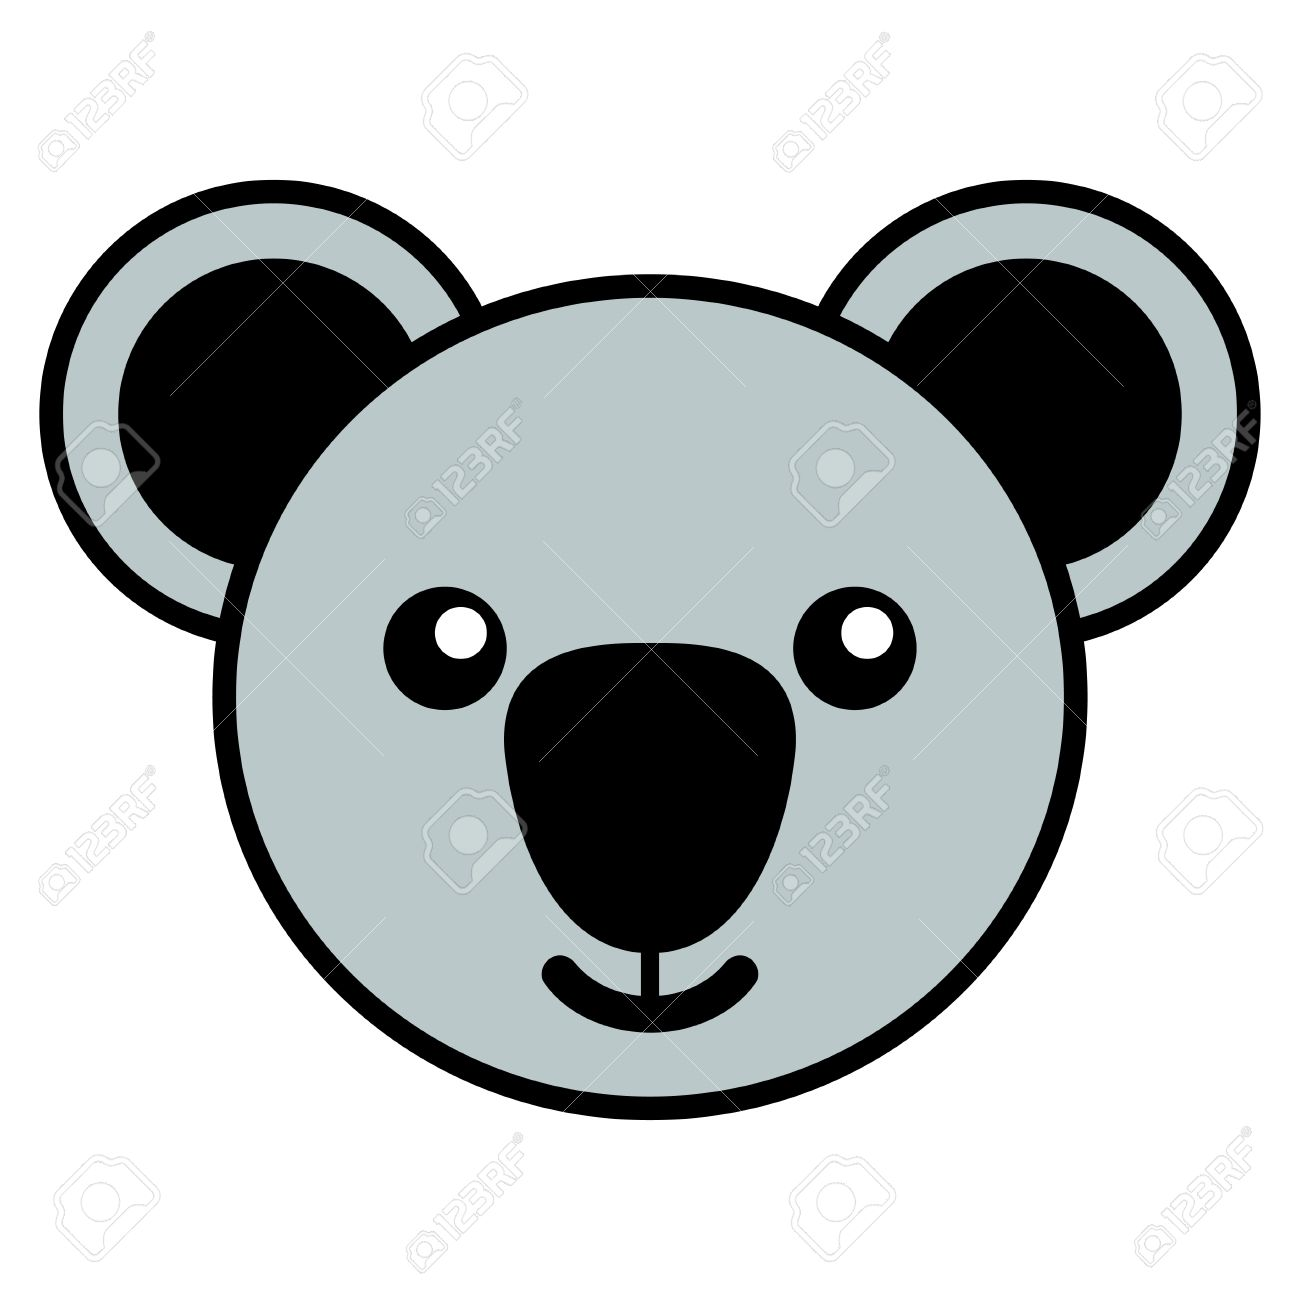 Simple cartoon of a cute koala.